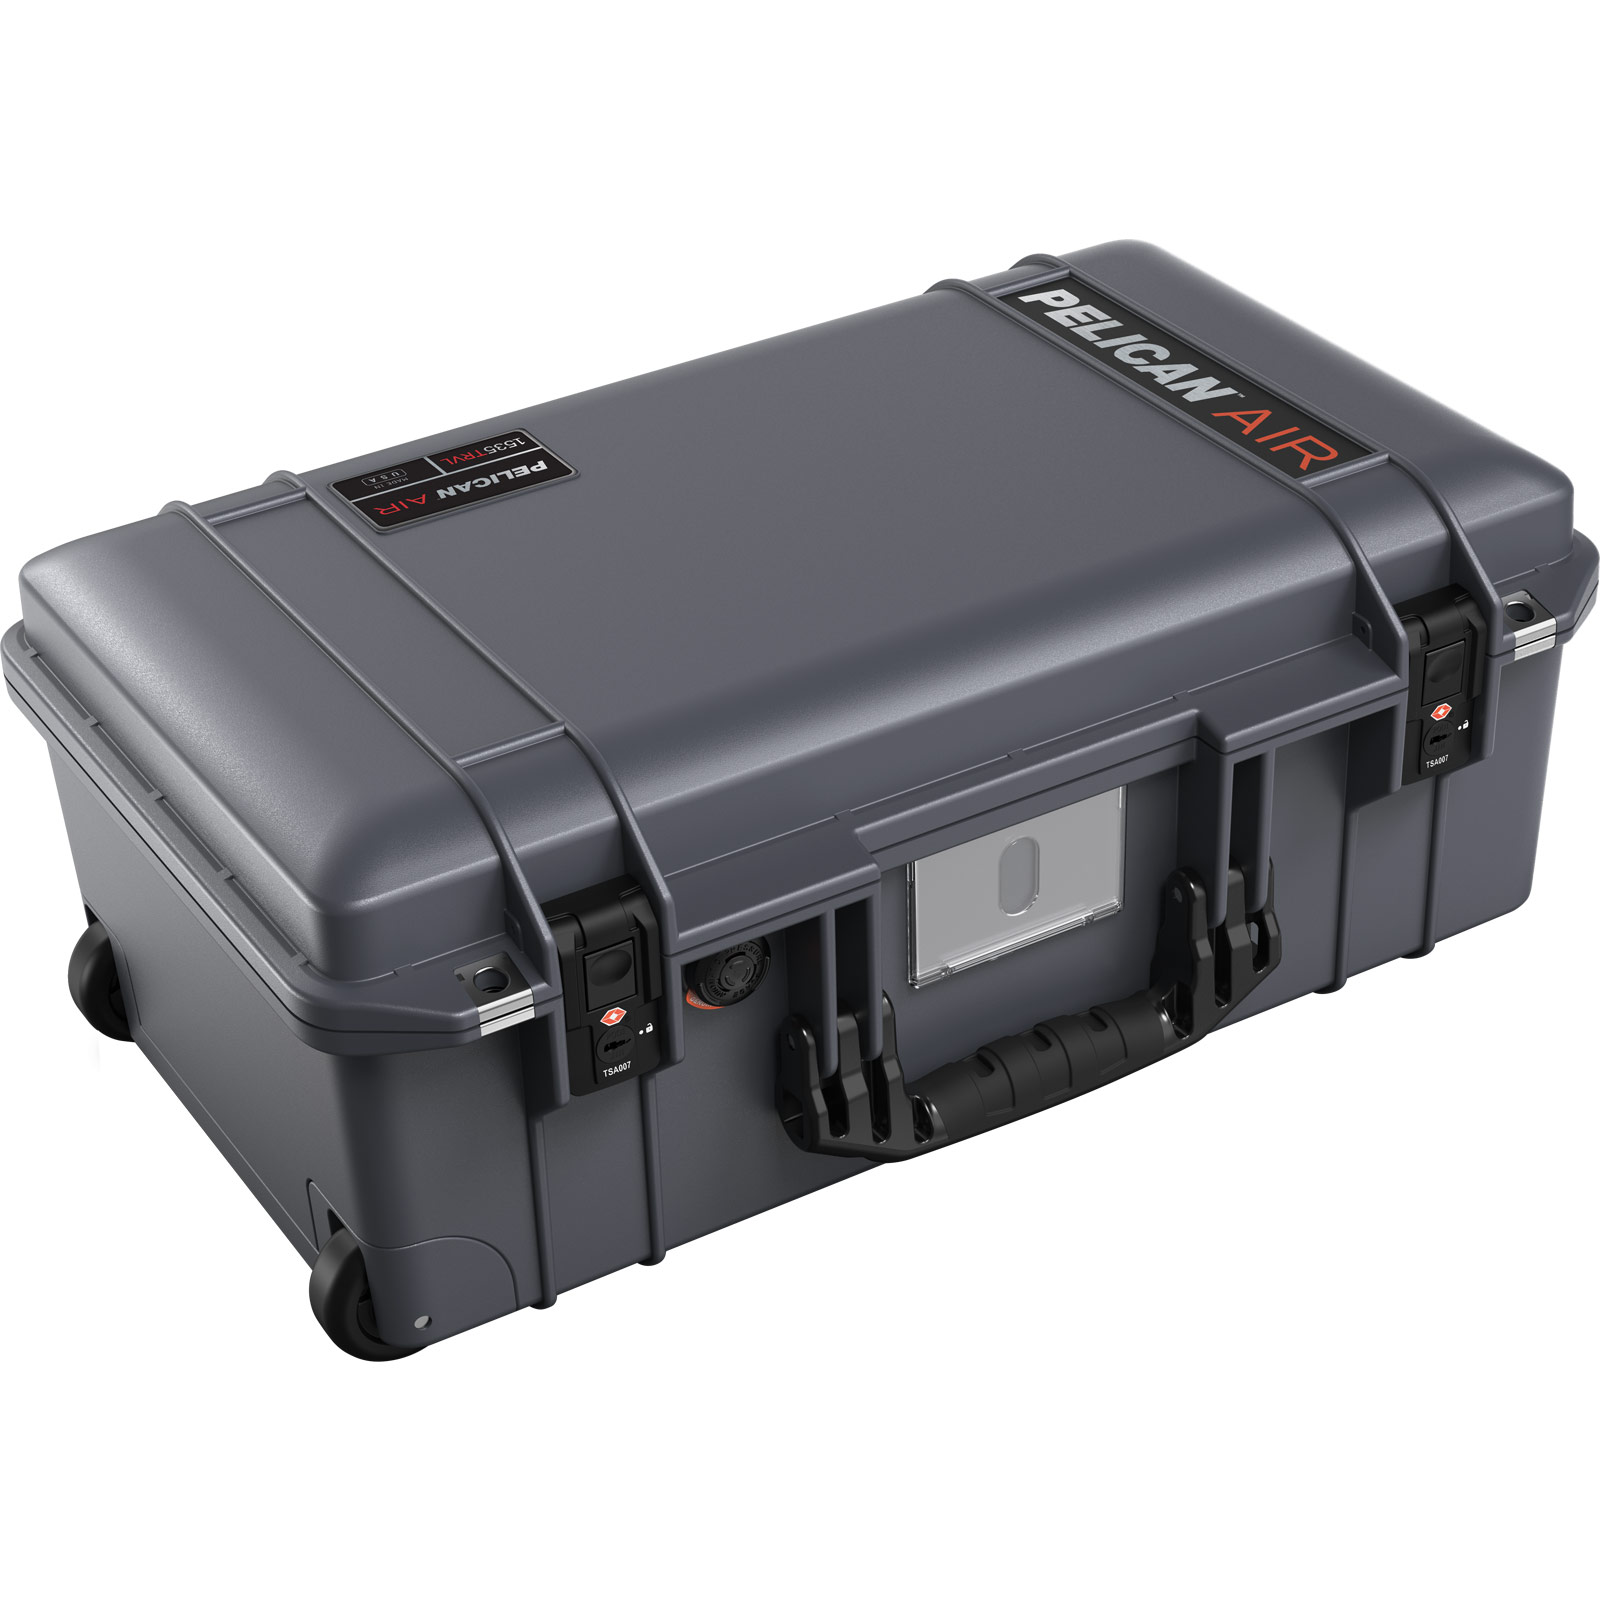 pelican 1535 air travel luggage case